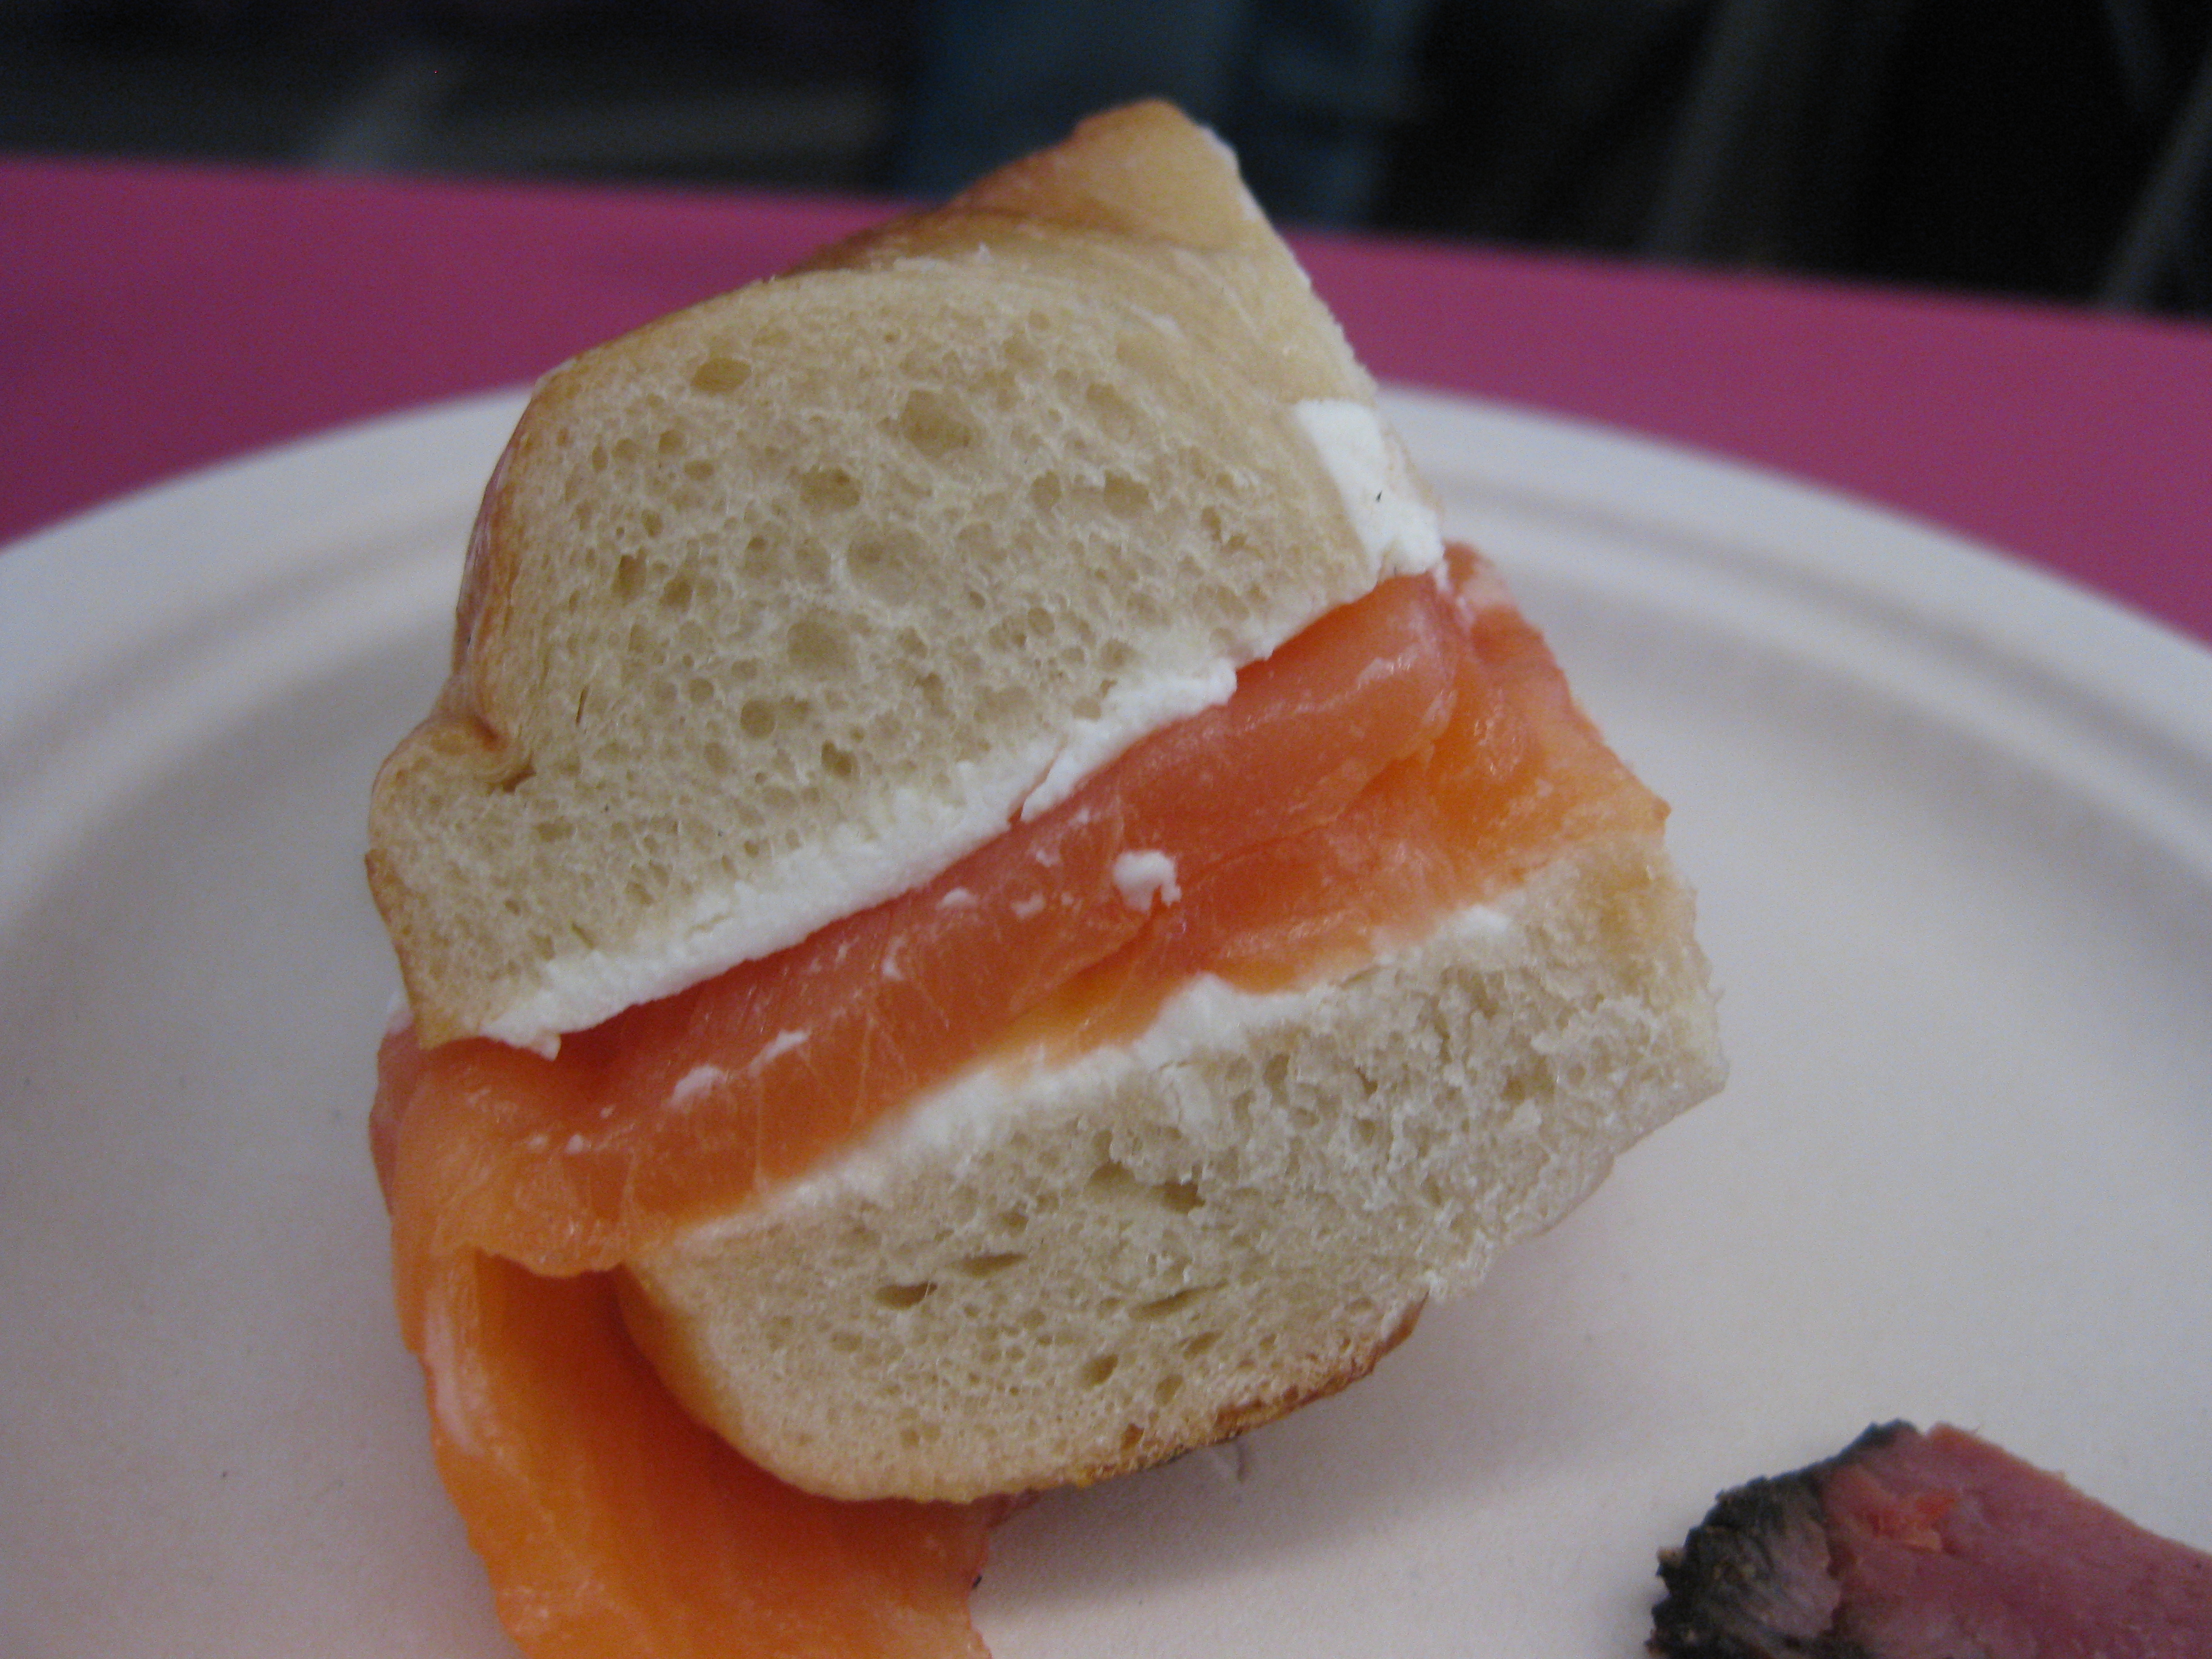 Wesson paired Barney Greengrass' smoked salmon on a bagel with a Riesling from Oregon.